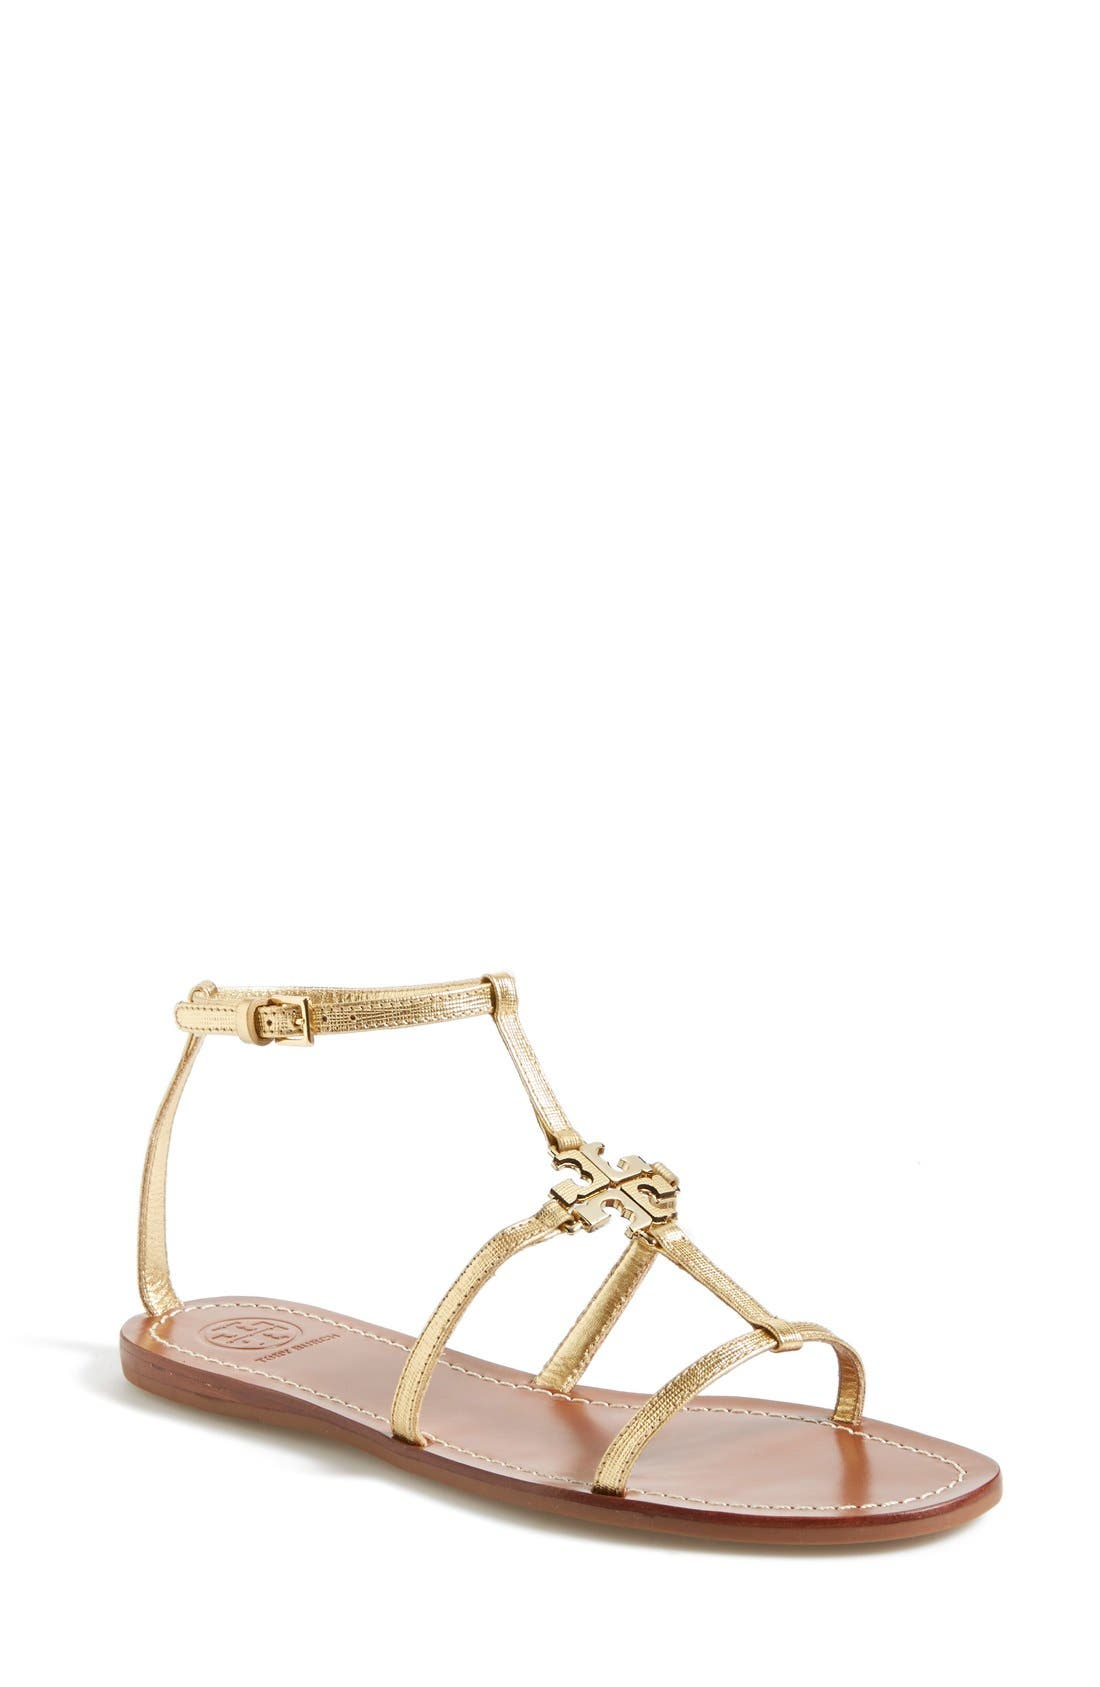 Alternate Image 1 Selected - Tory Burch 'Lowell' Leather Sandal (Women)